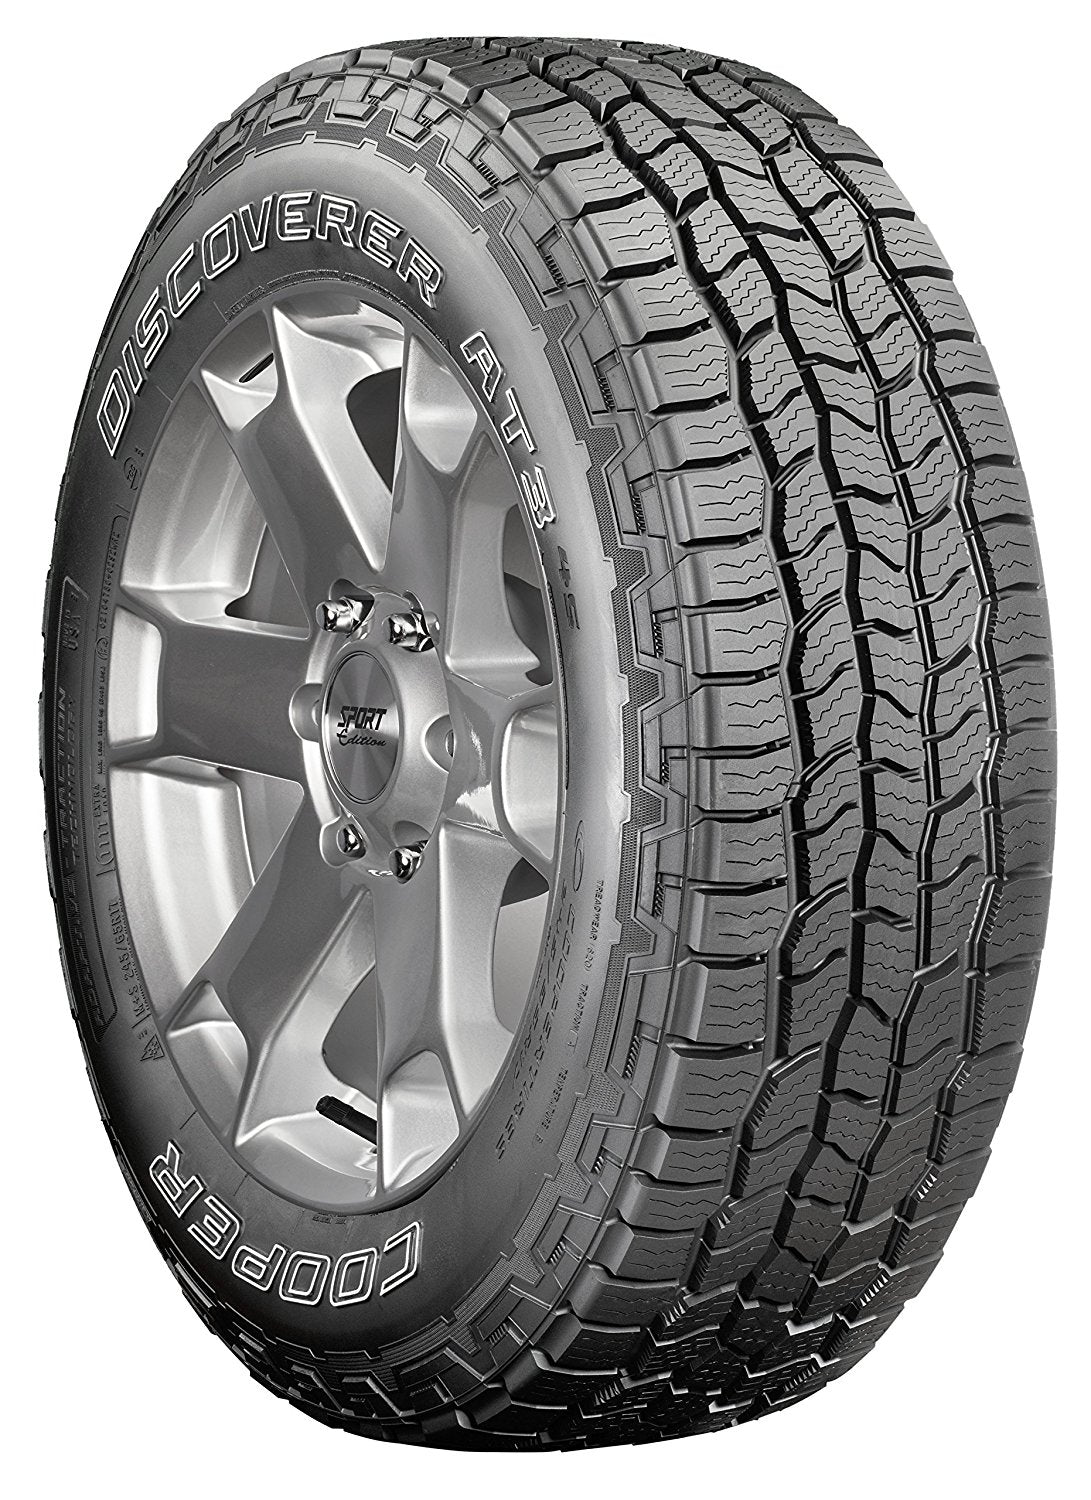 265 70r17 All Terrain Tires >> Cooper Discoverer A T3 4s All Terrain Radial Tire 265 70r17 115t Vazlo